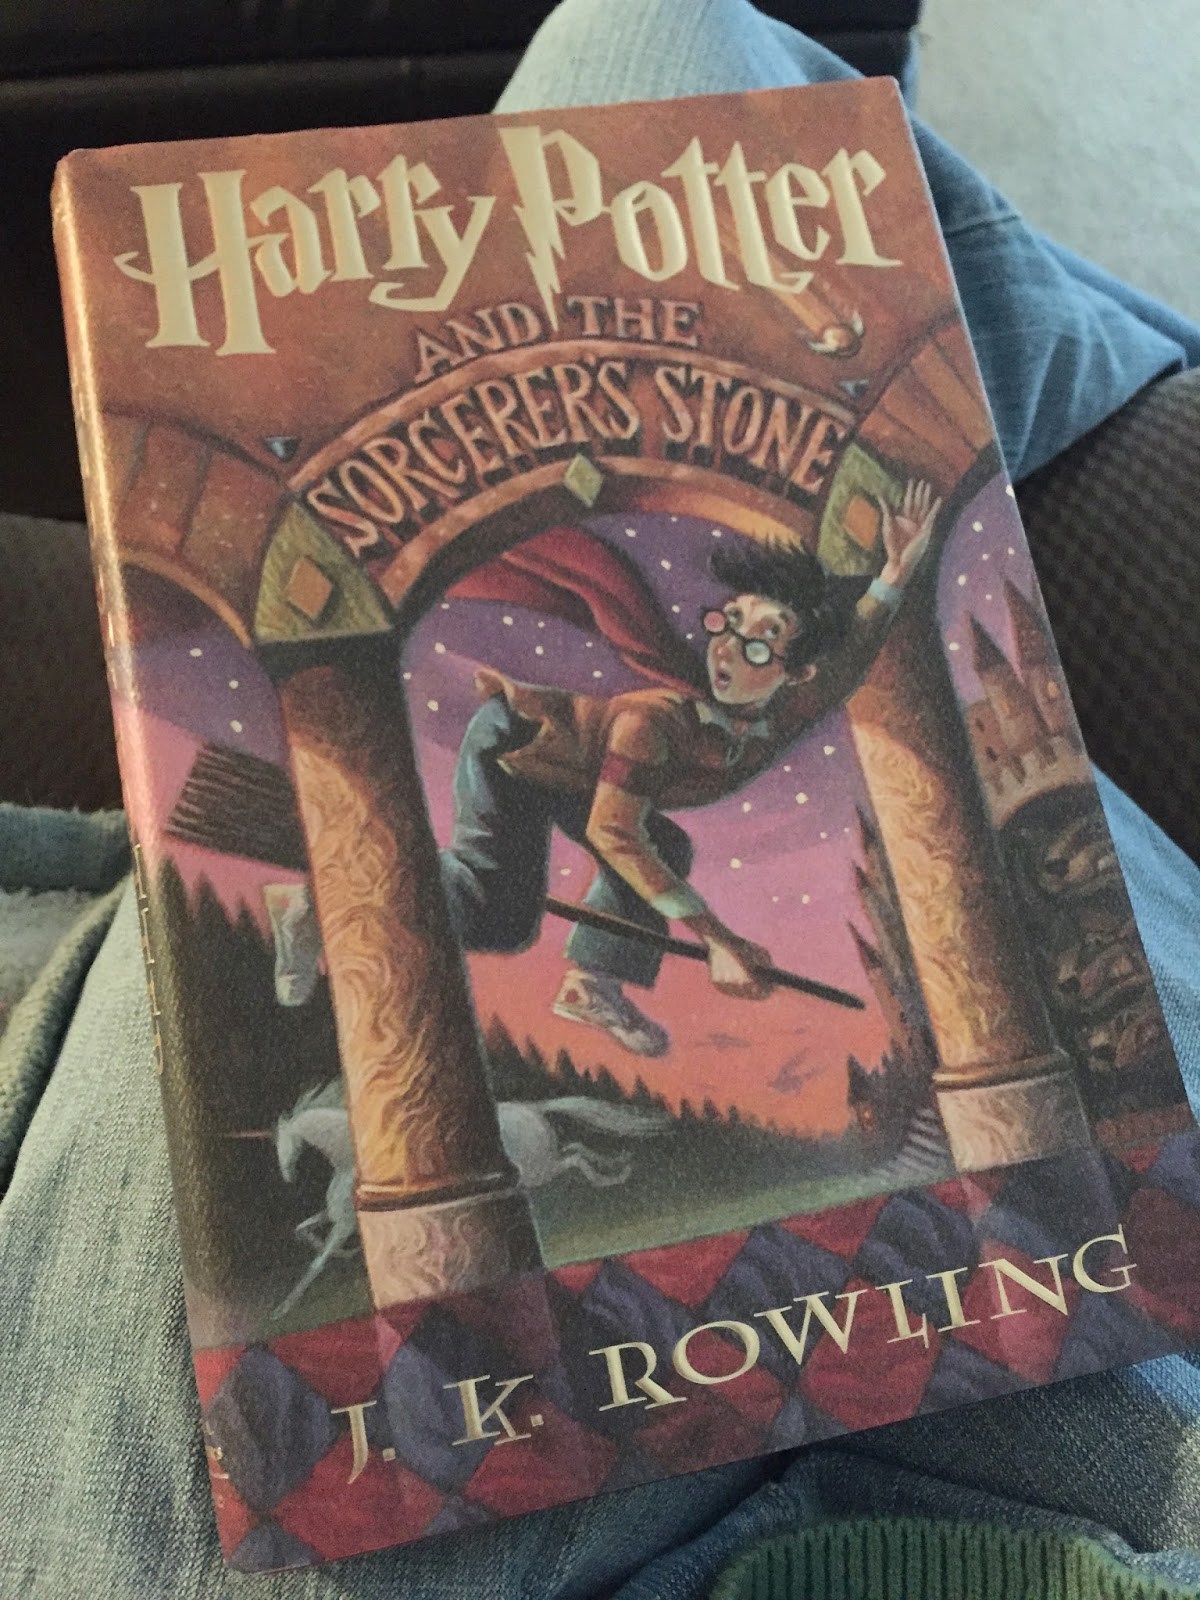 Harry Potter and the Sorcerer's Stone | J.K. Rowling